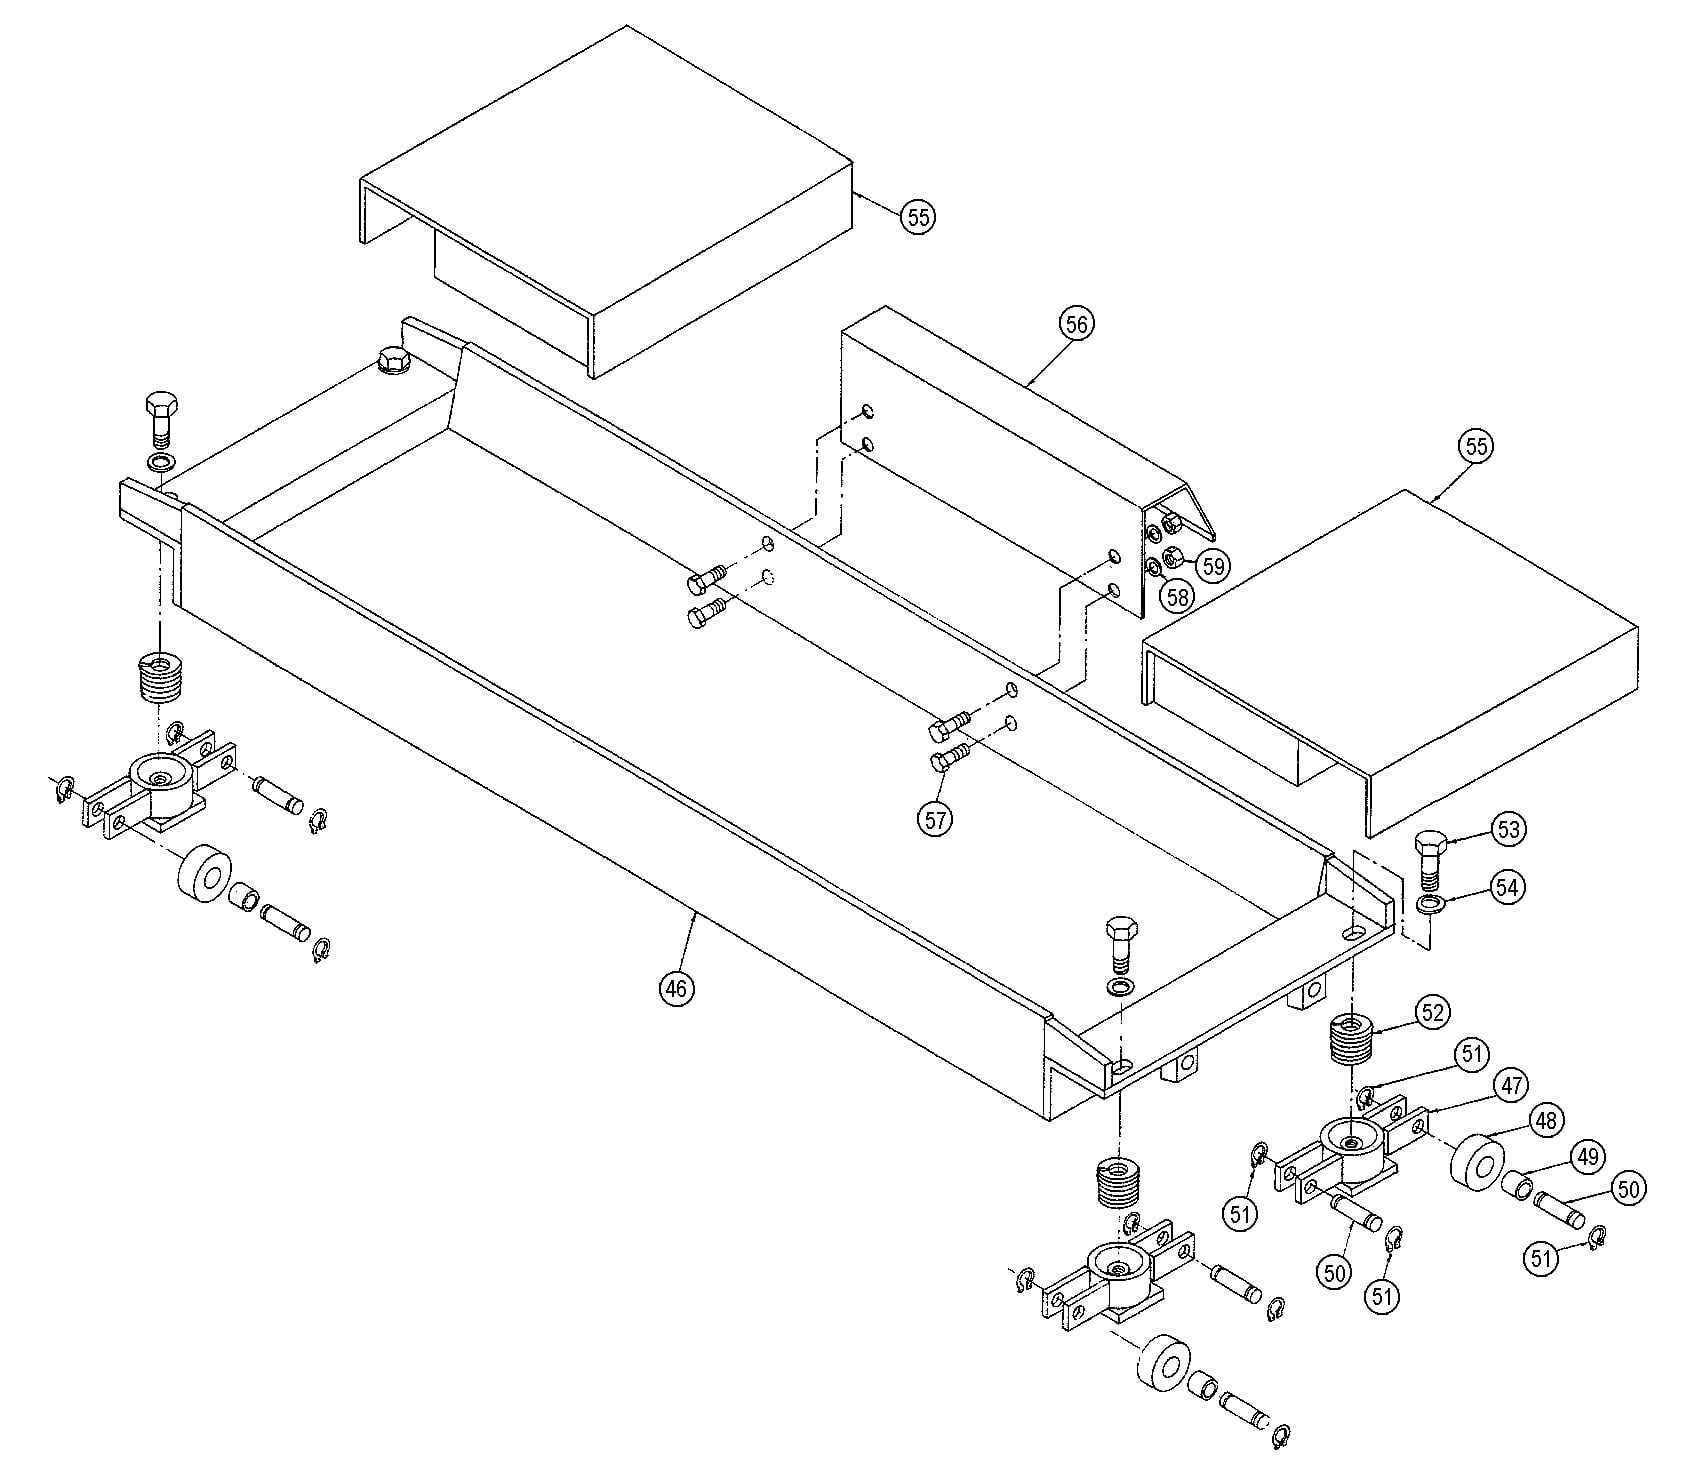 Parts for Ben Pearson LMA 12 Optional Jacking Channel Kit | SVI  International, Inc.  SVI International